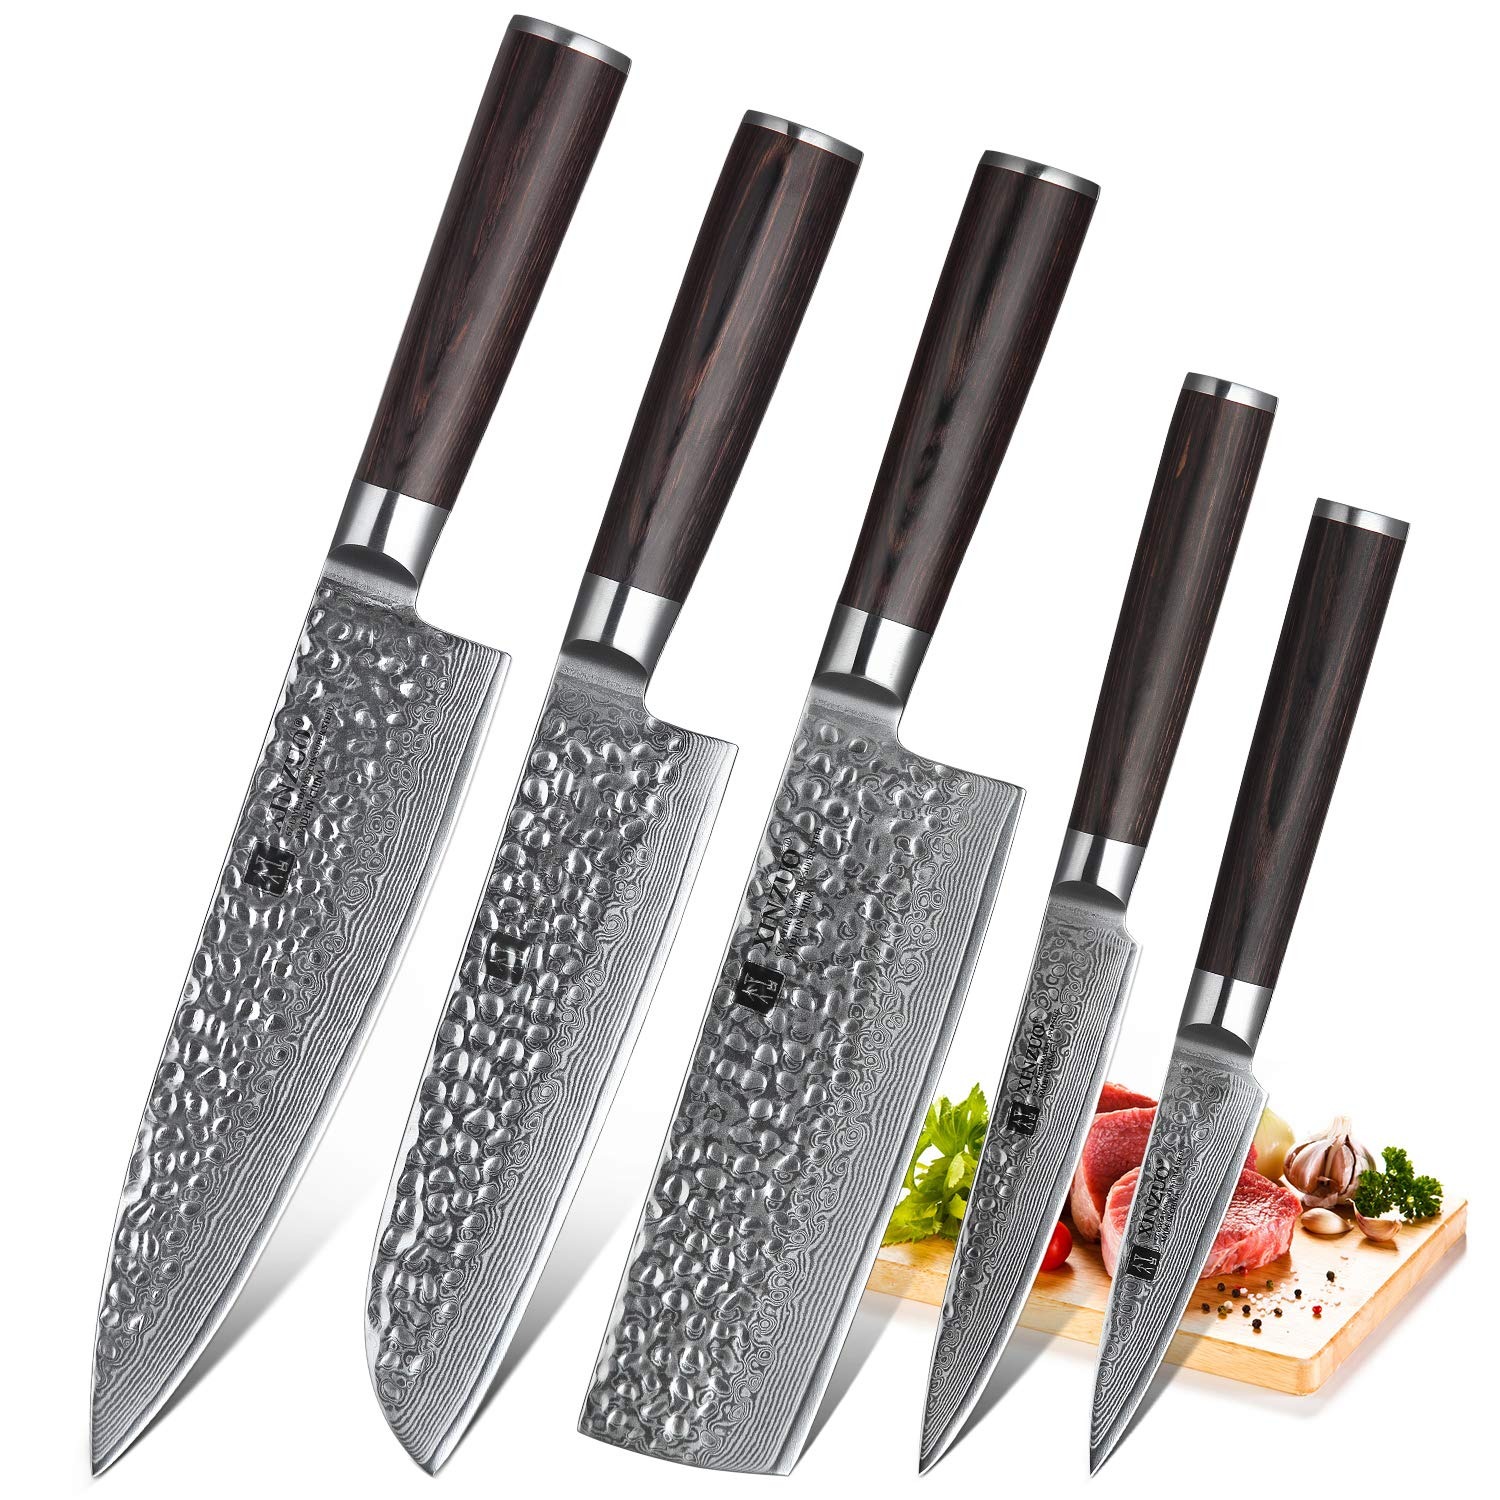 XINZUO 5-Piece Damascus Kitchen Knife Set Japanese Steel, Nakiri Knife Slicing Hammered Forging Damascus Kitchen Knife Professional Chef's Knife Cutlery Santoku Knife with Pakkawood Handle - He Series by XINZUO